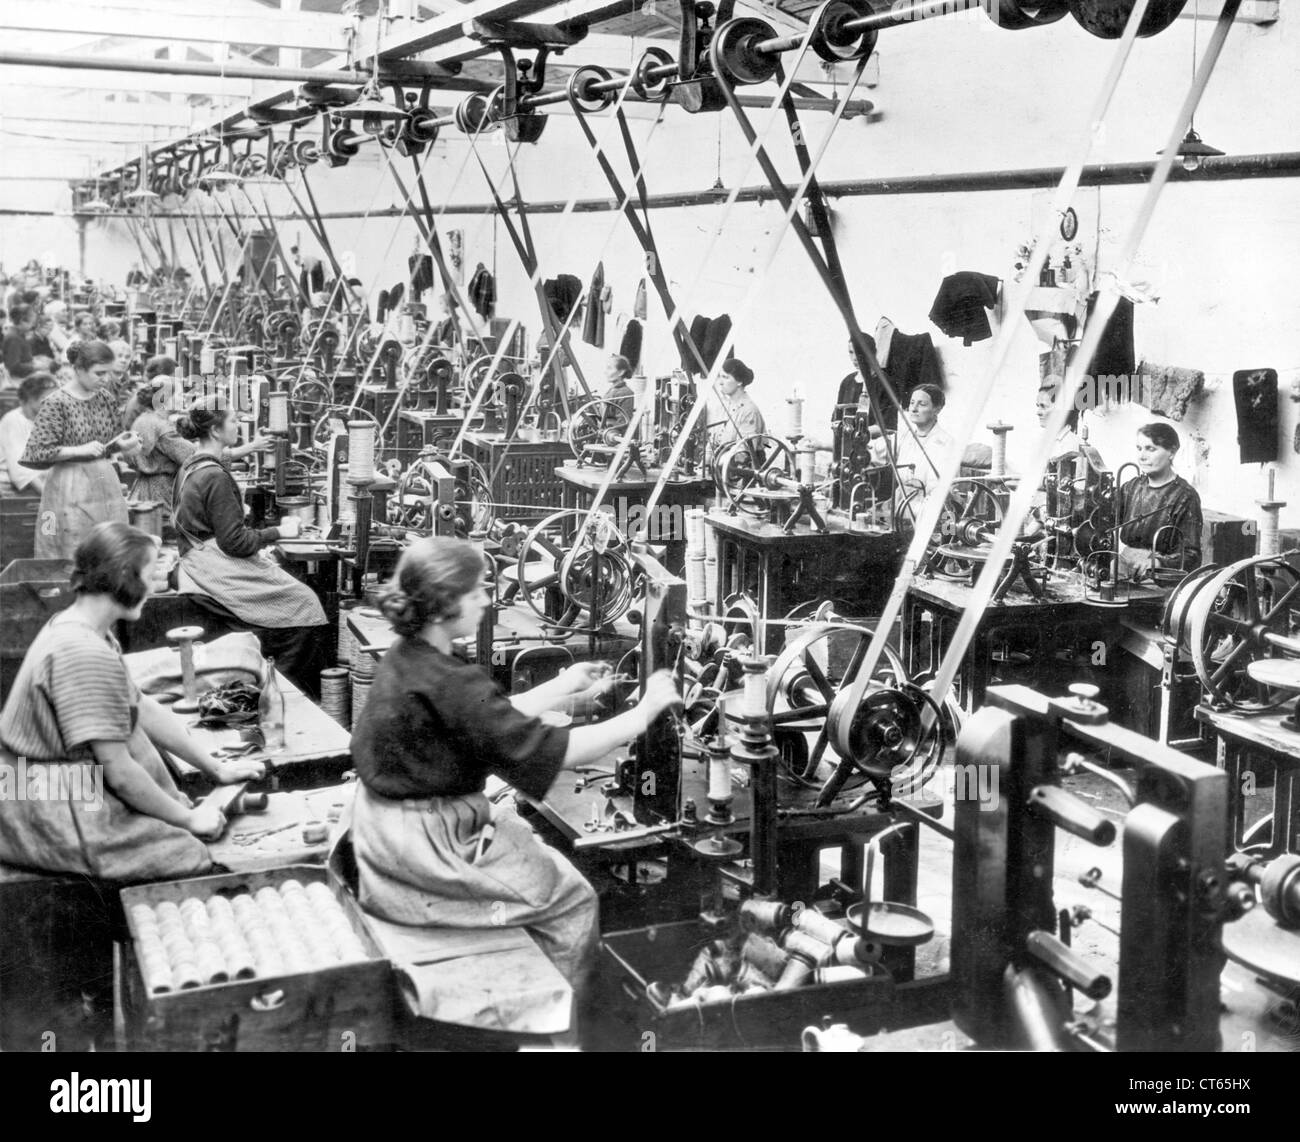 Women sewing in garment factory - Stock Image